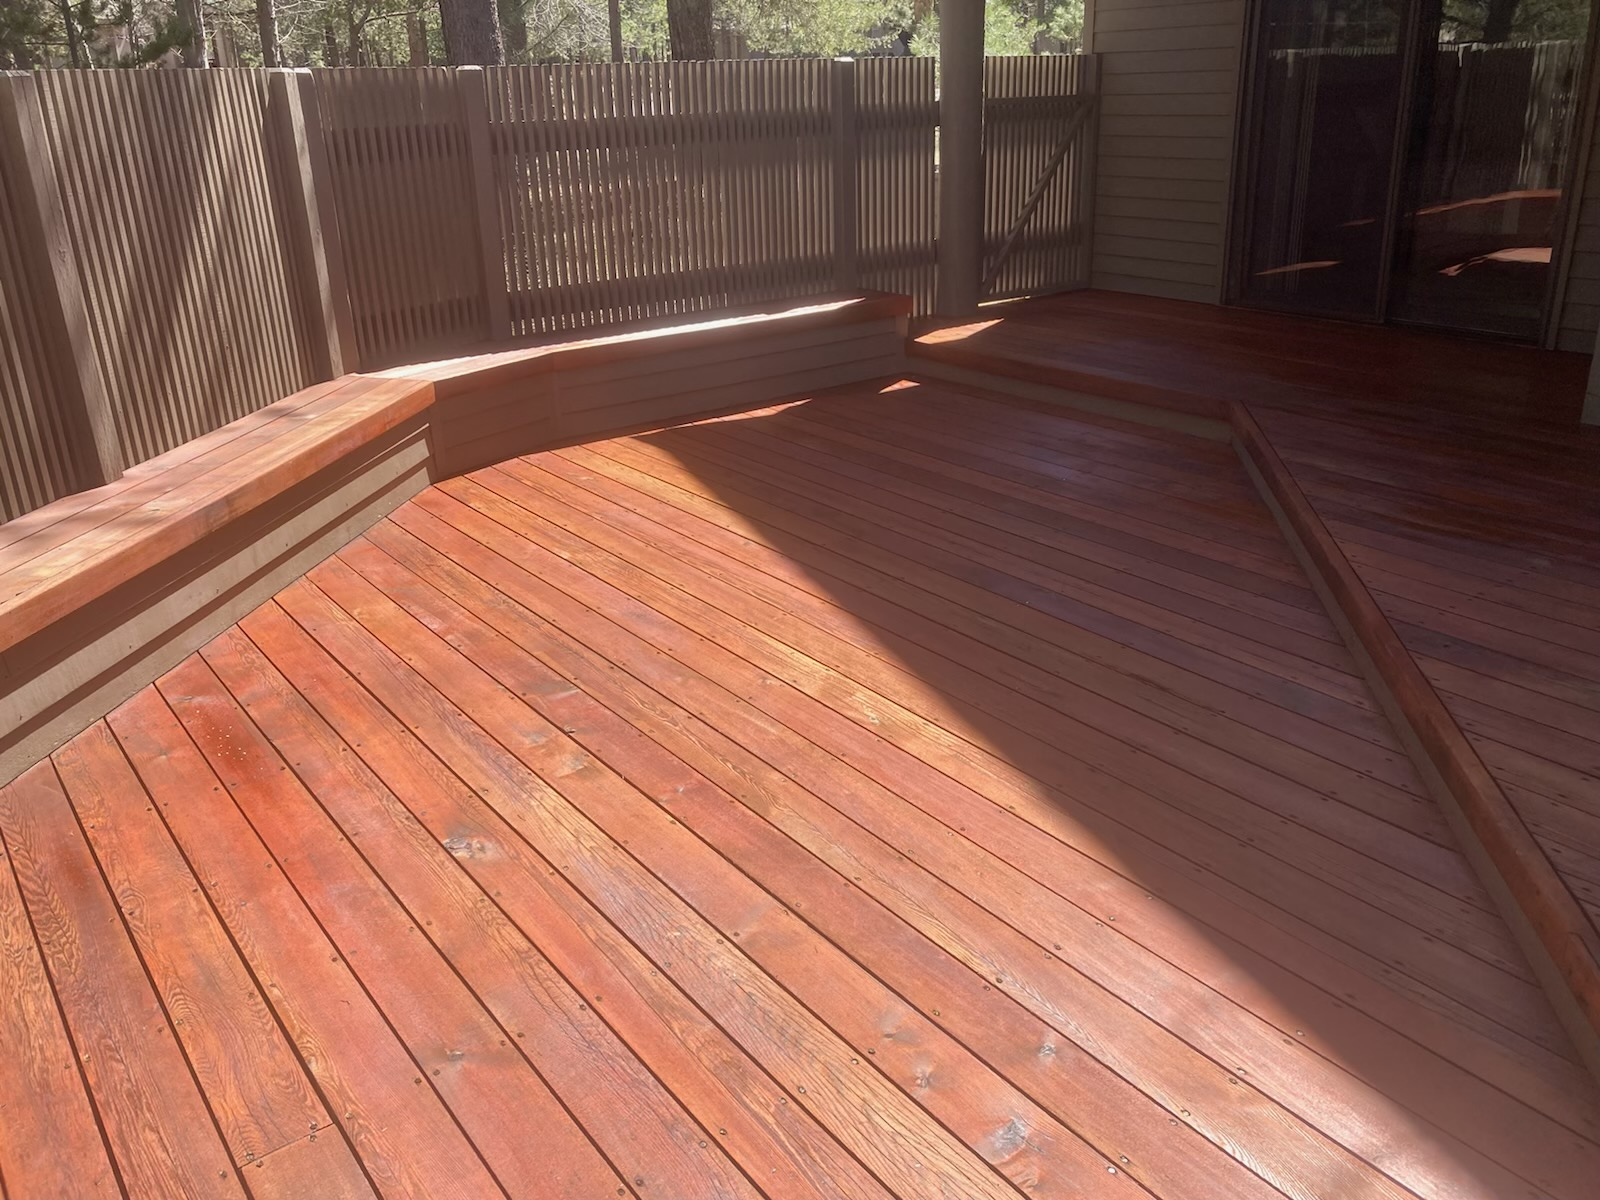 Photo of the same deck of Sunriver homeowner after Randy refinished